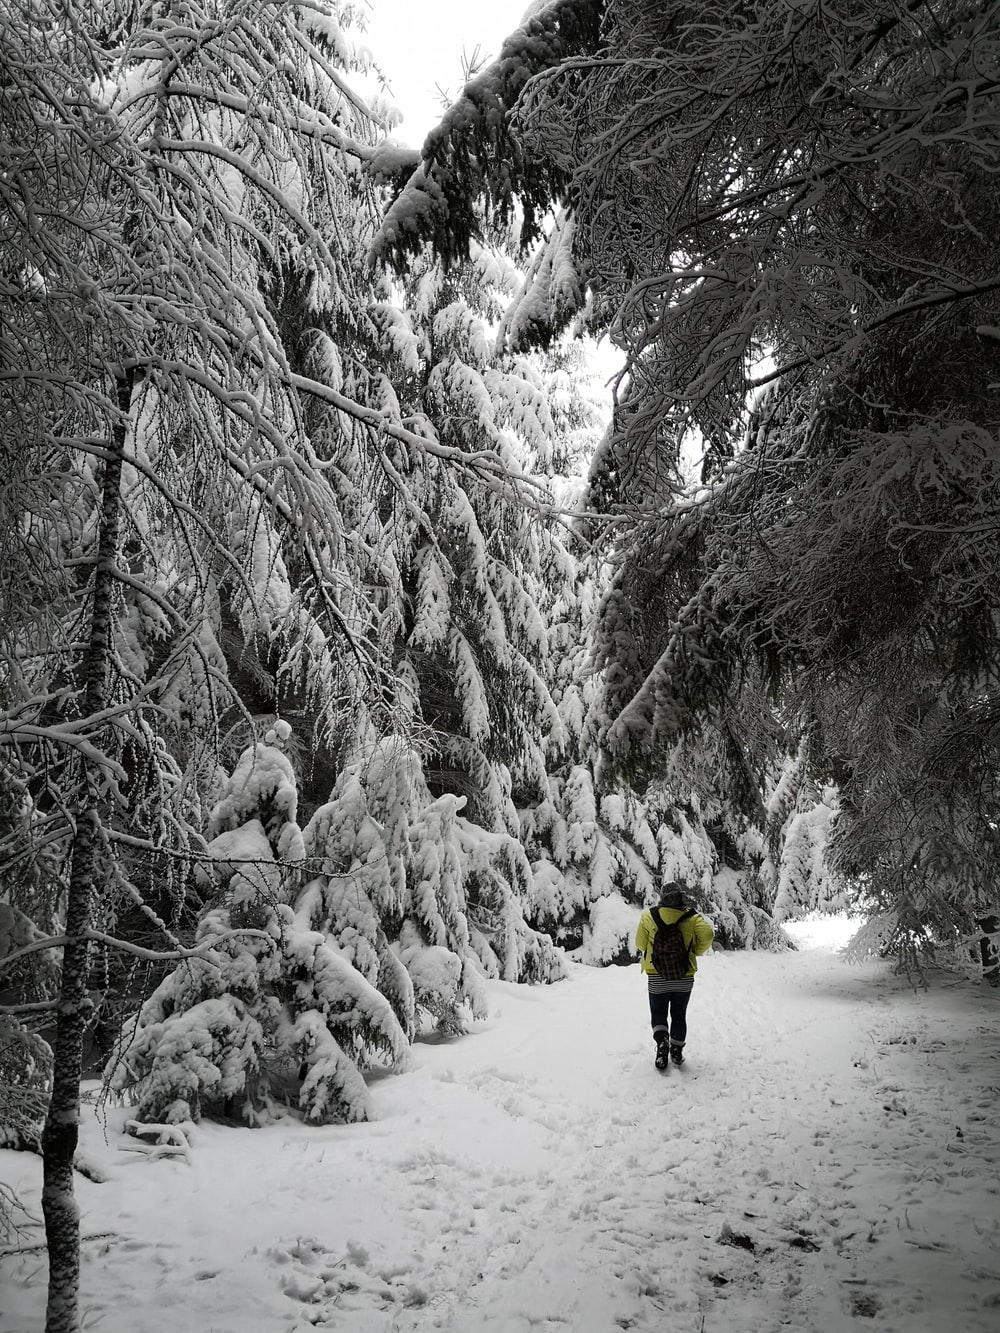 man in yellow jacket near trees coated with snow